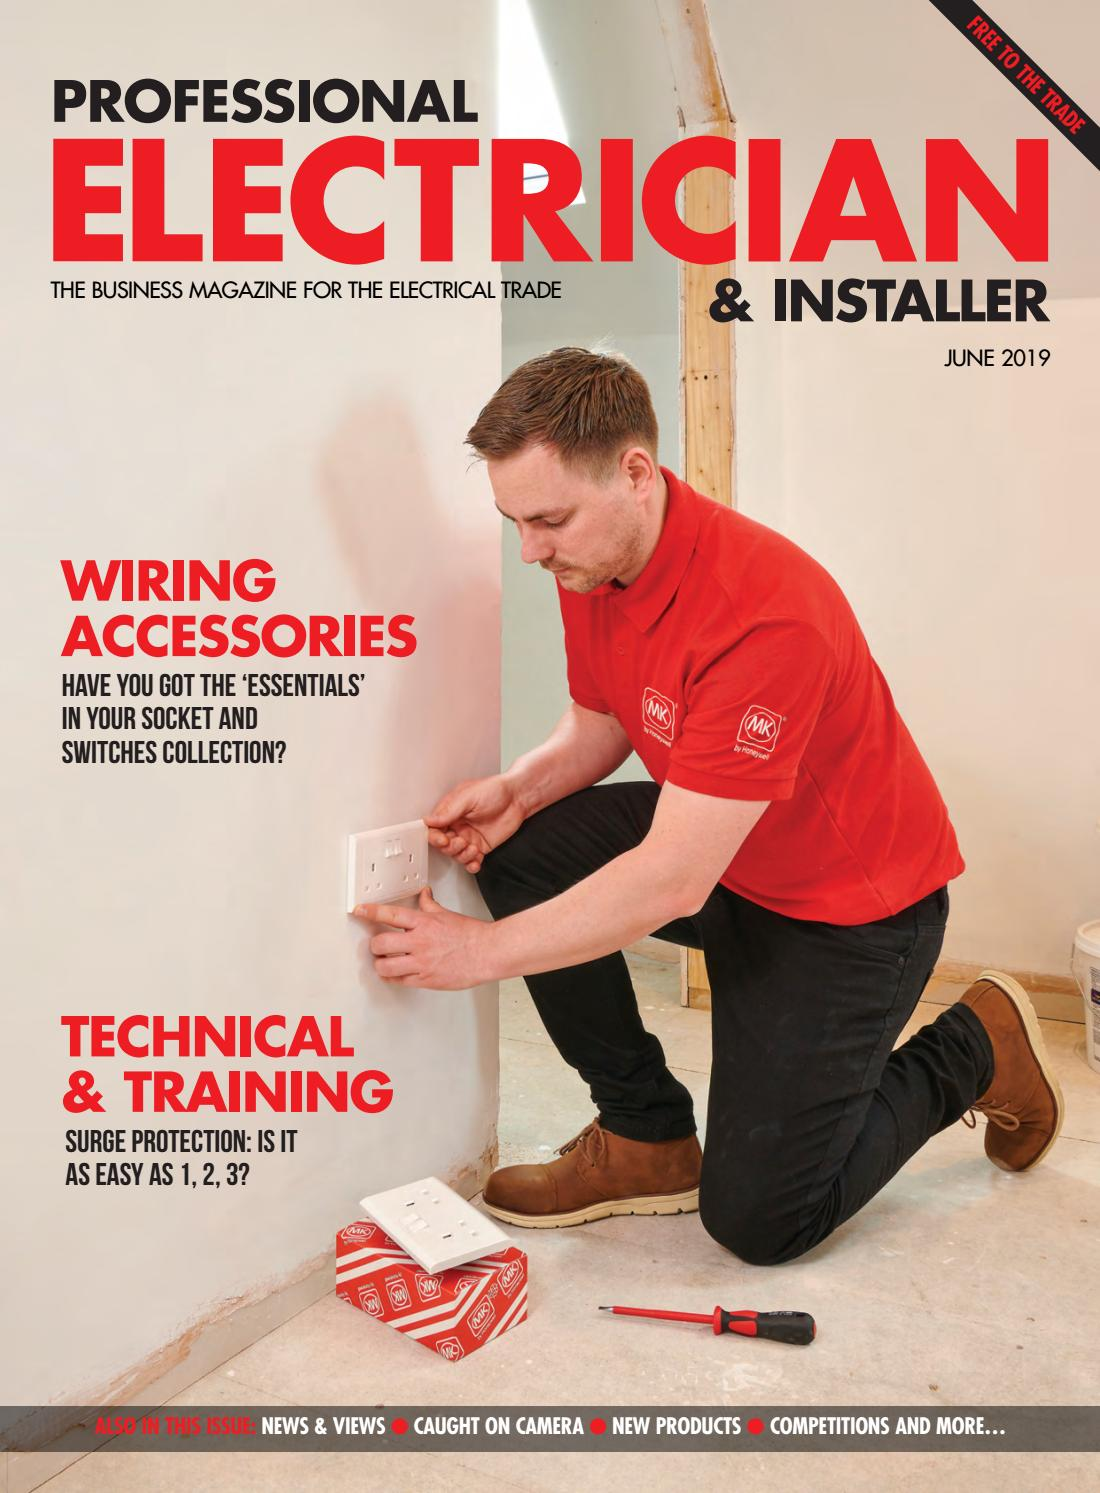 Professional Electrician June 2019 by Hamerville Media Group - issuu